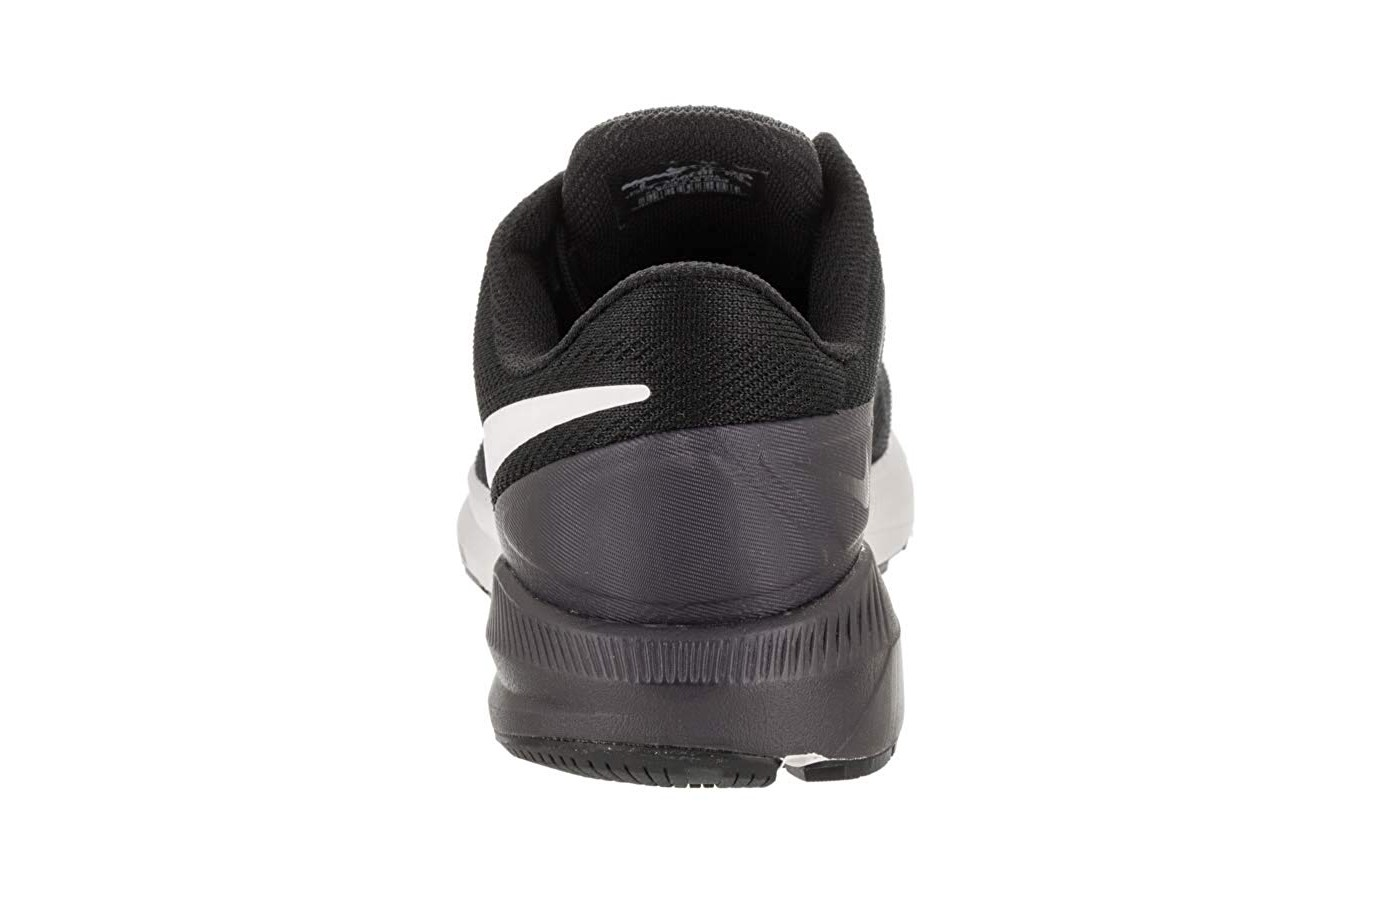 The heel provides protection against overpronation.